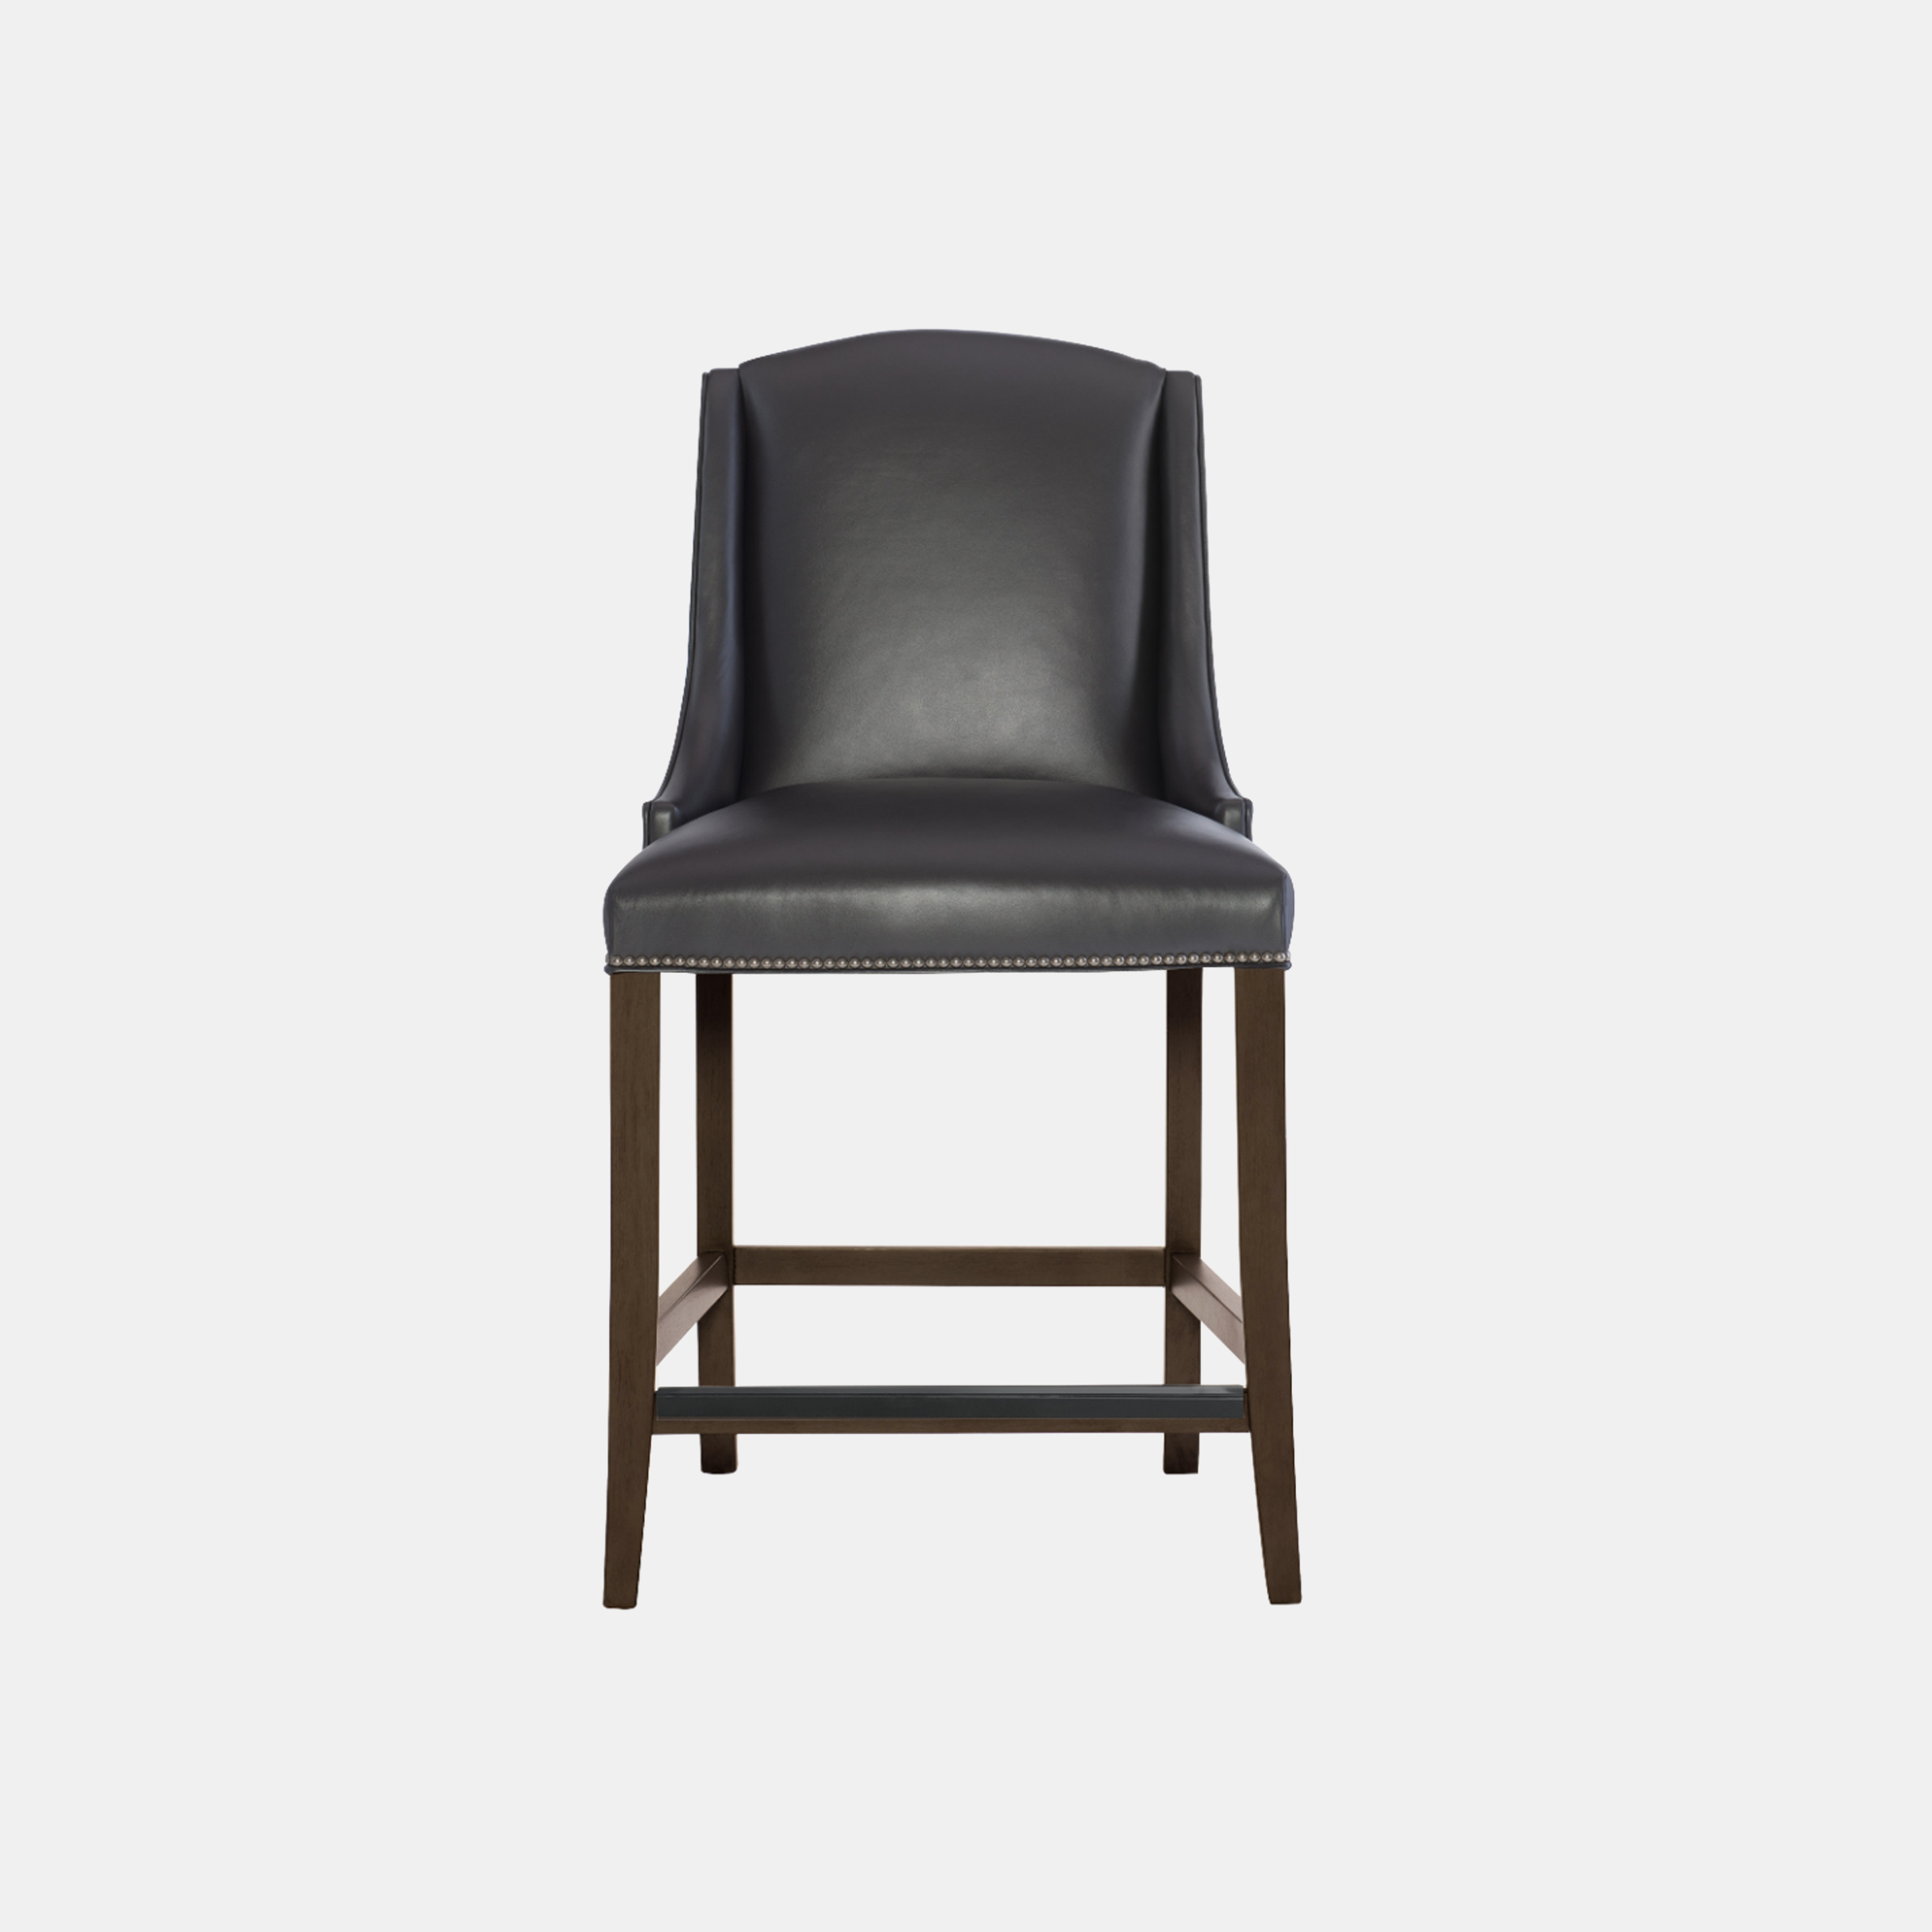 "Slope Bar Stool  24.5""w x 26""d x 47-3/8""h Available in fabric and leather. Wood finish available in cocoa (shown), smoke, or chalk. Also available as counter stool and dining chair. SKU5930BHT"